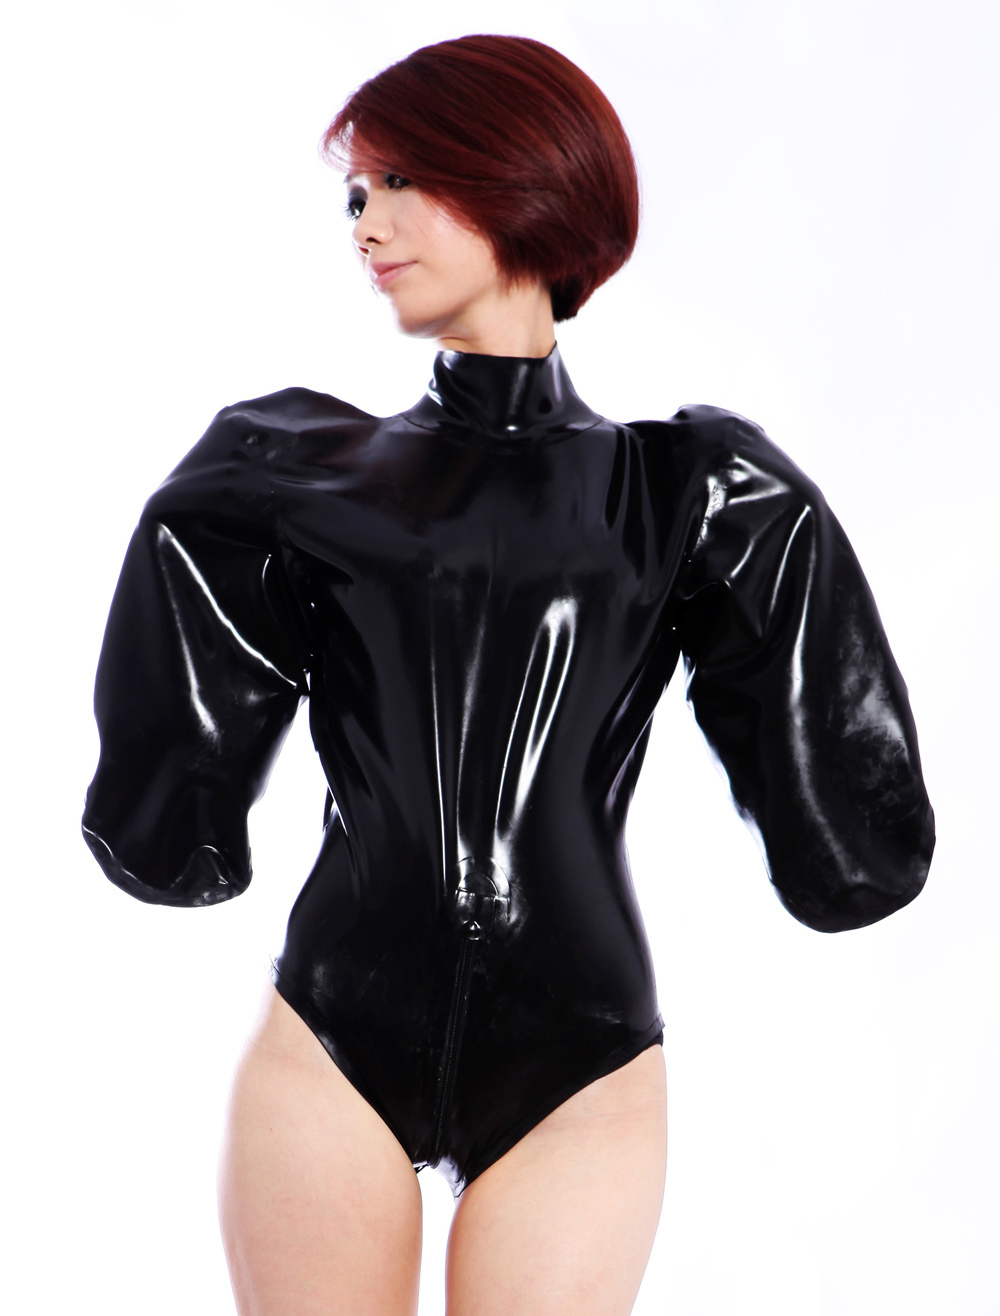 Halloween Unique Black One Piece Women's Latex Clothes(without sleeve opening) Halloween